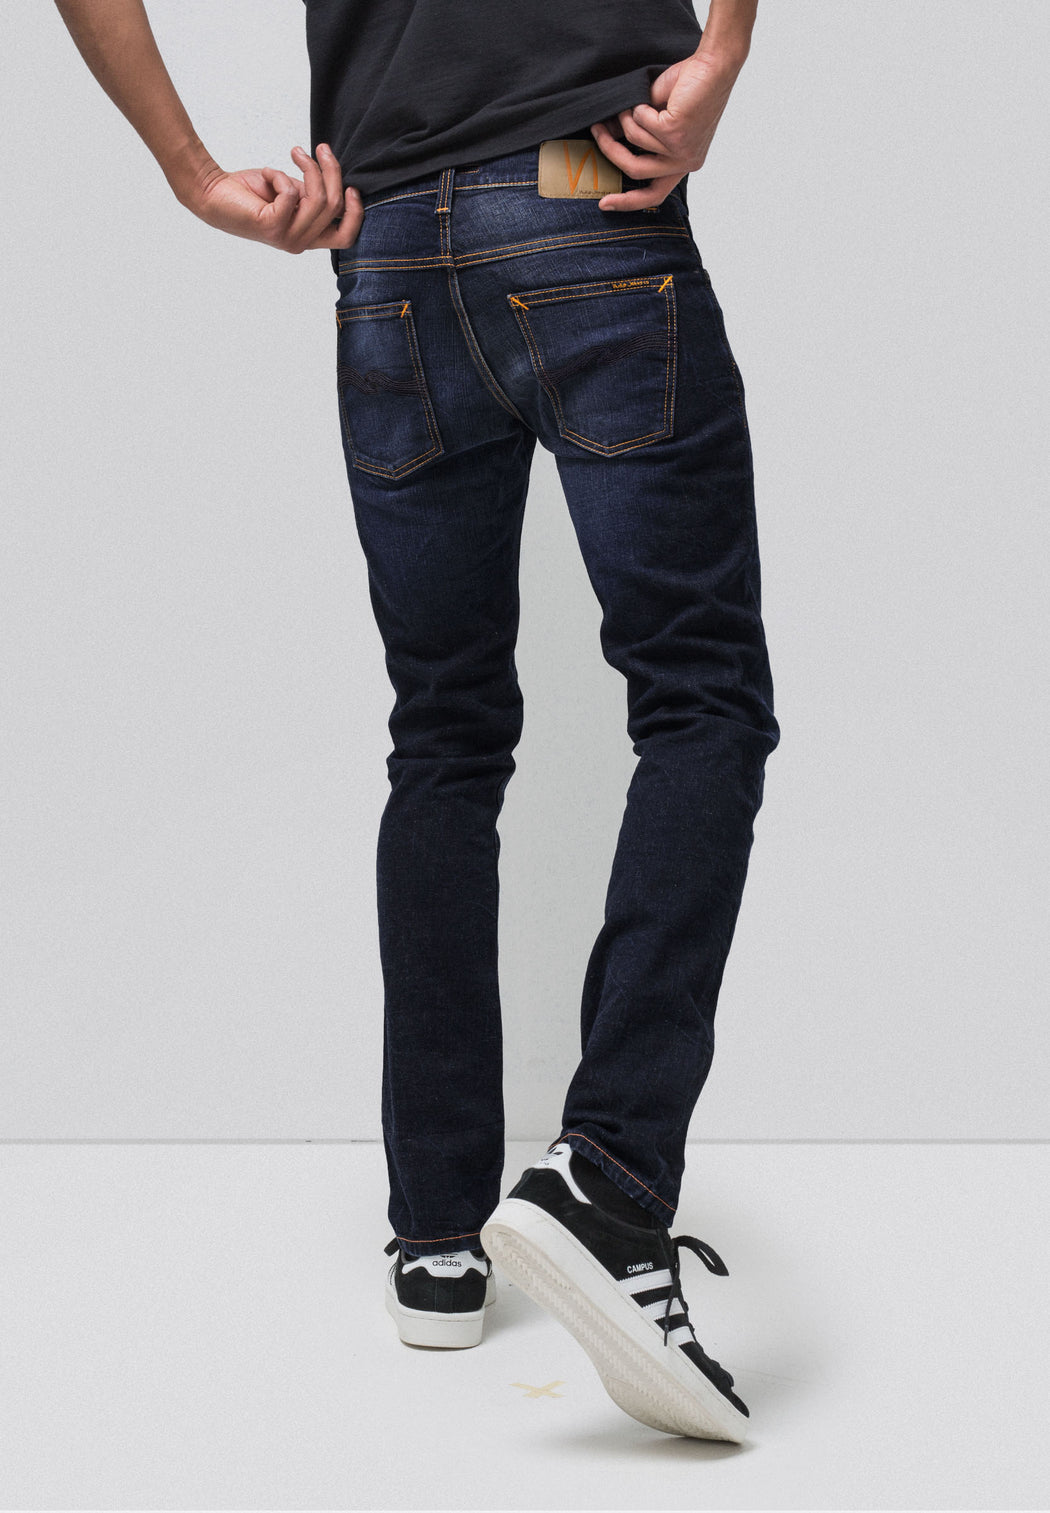 jeans grim tim ink navy